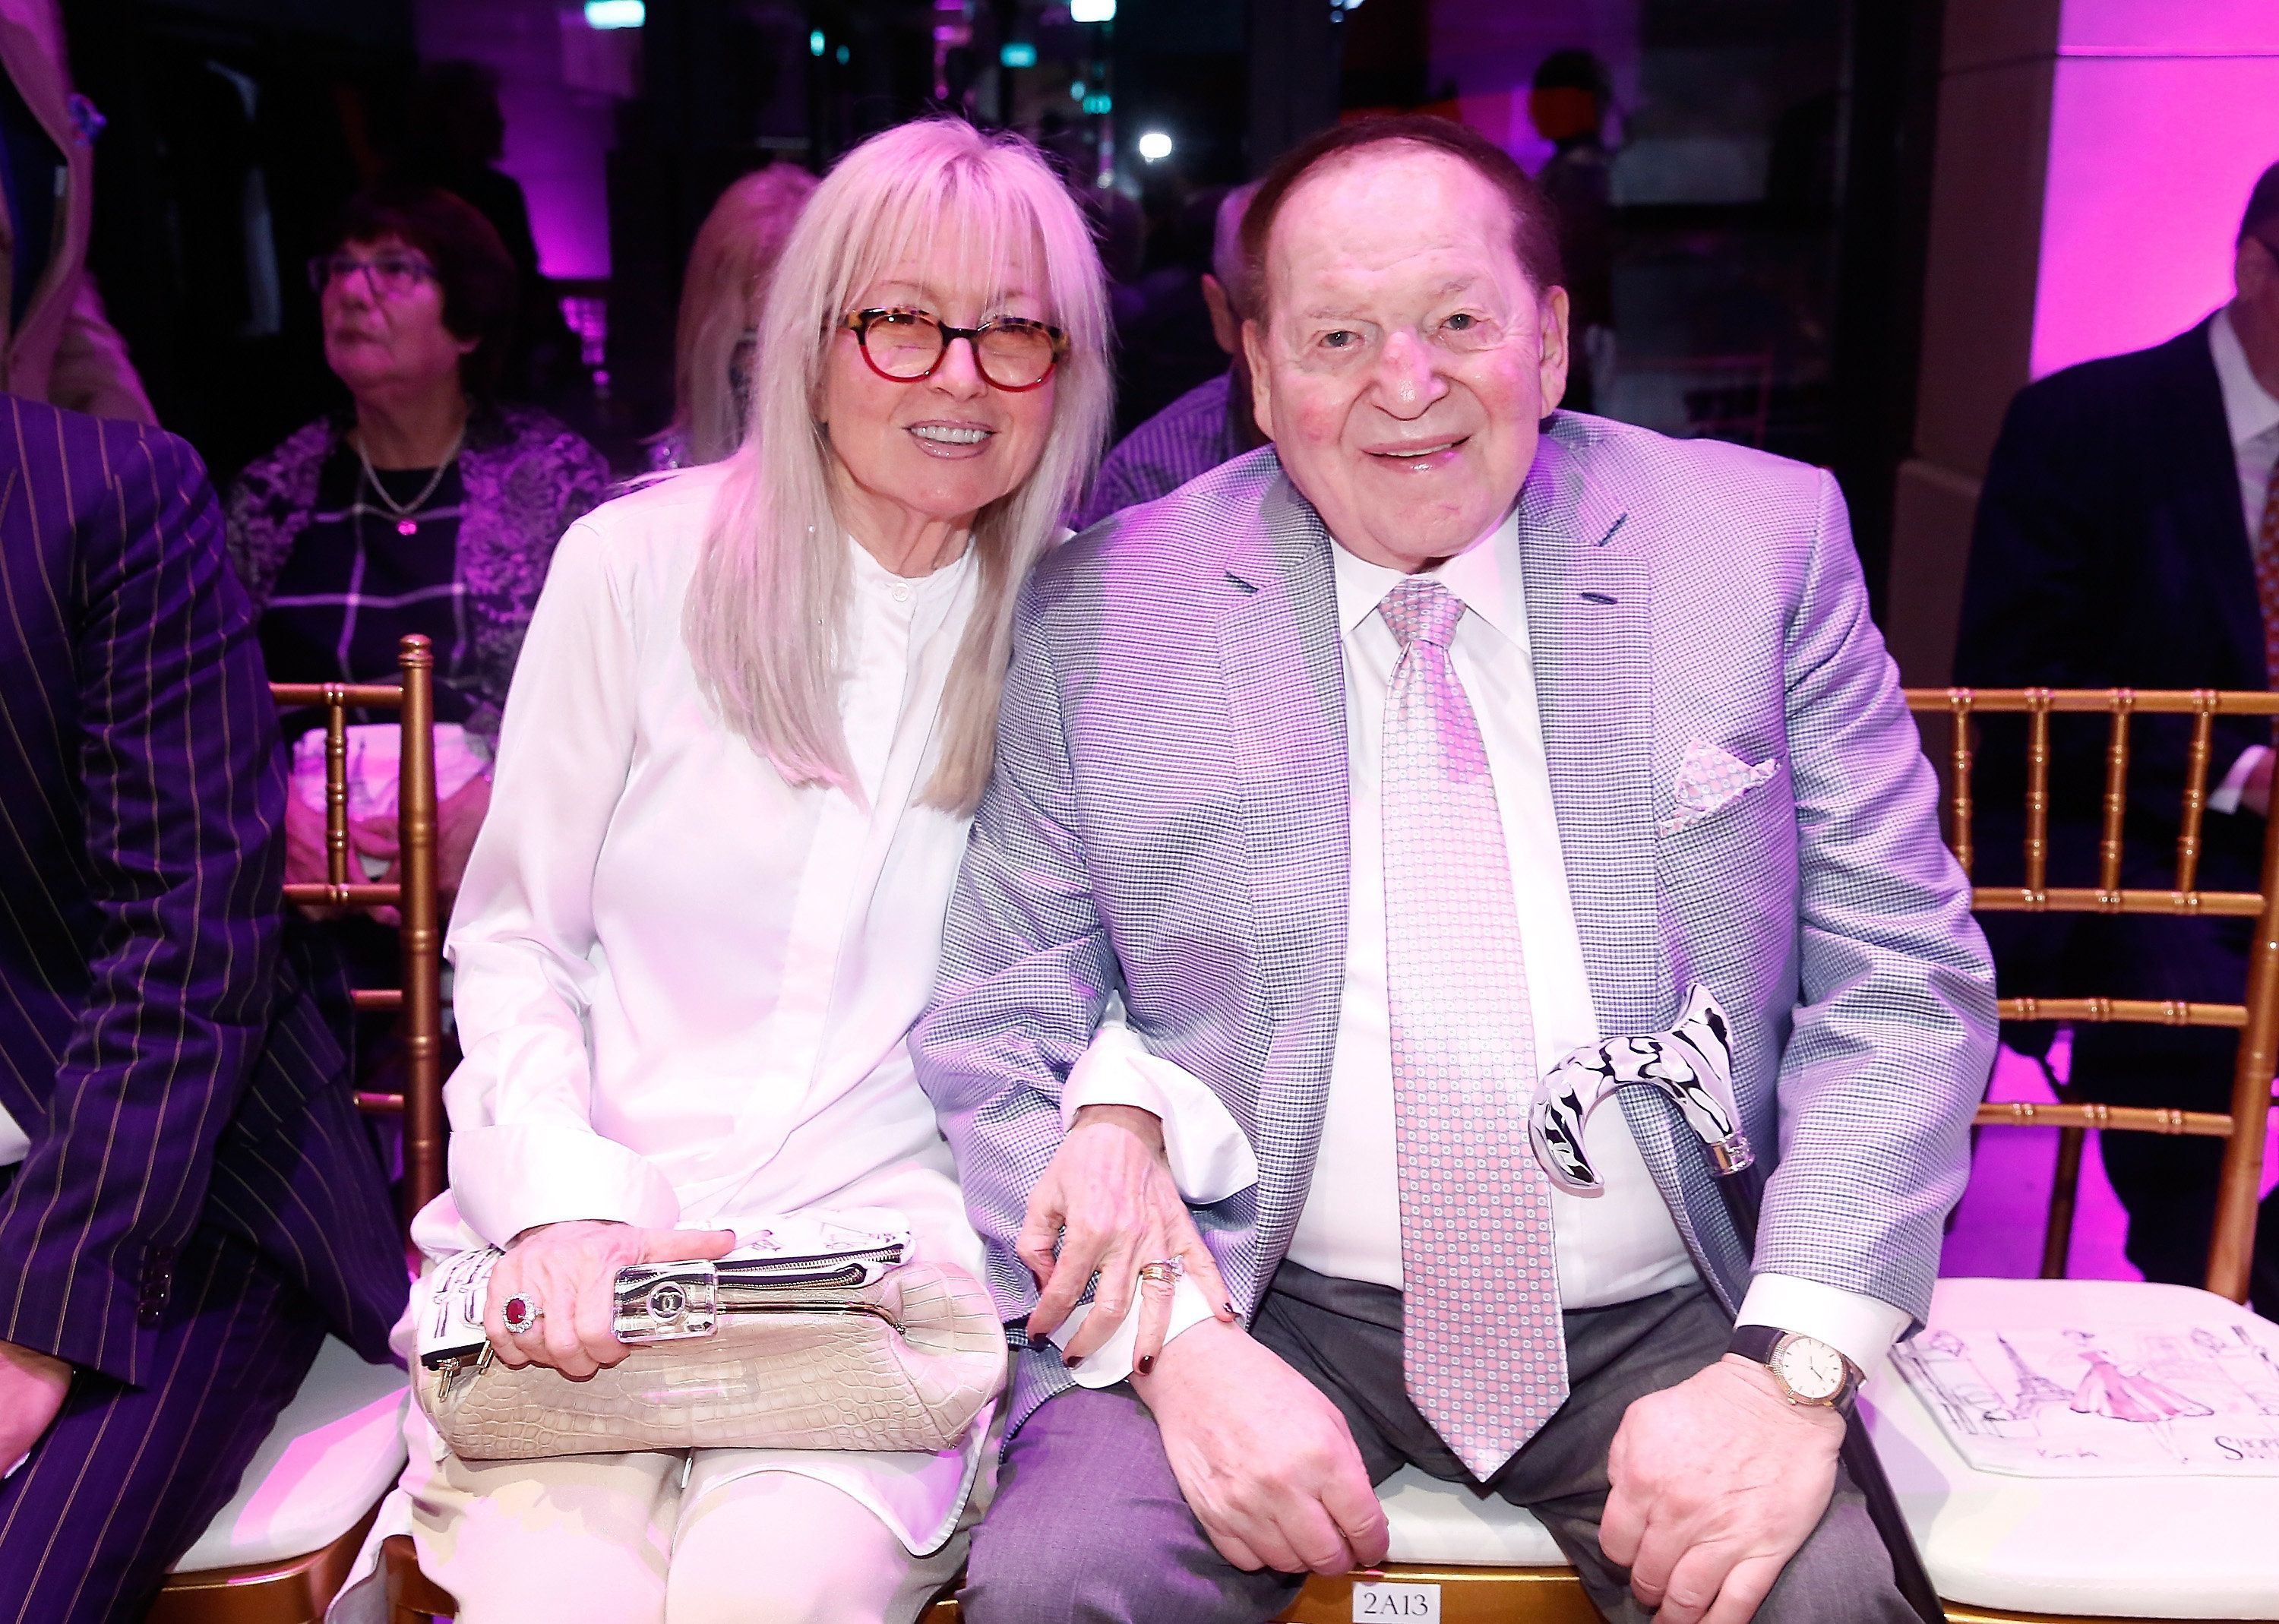 MACAU - SEPTEMBER 14:  The chairman and chief executive officer of the Las Vegas Sands Corporation Sheldon Adelson (R) and wife Miriam Adelson attend the Swarovski show during the Front Row at Shoppes at Parisian on September 14, 2016 in Macau, Macau.  (Photo by Anthony Kwan/Getty Images)